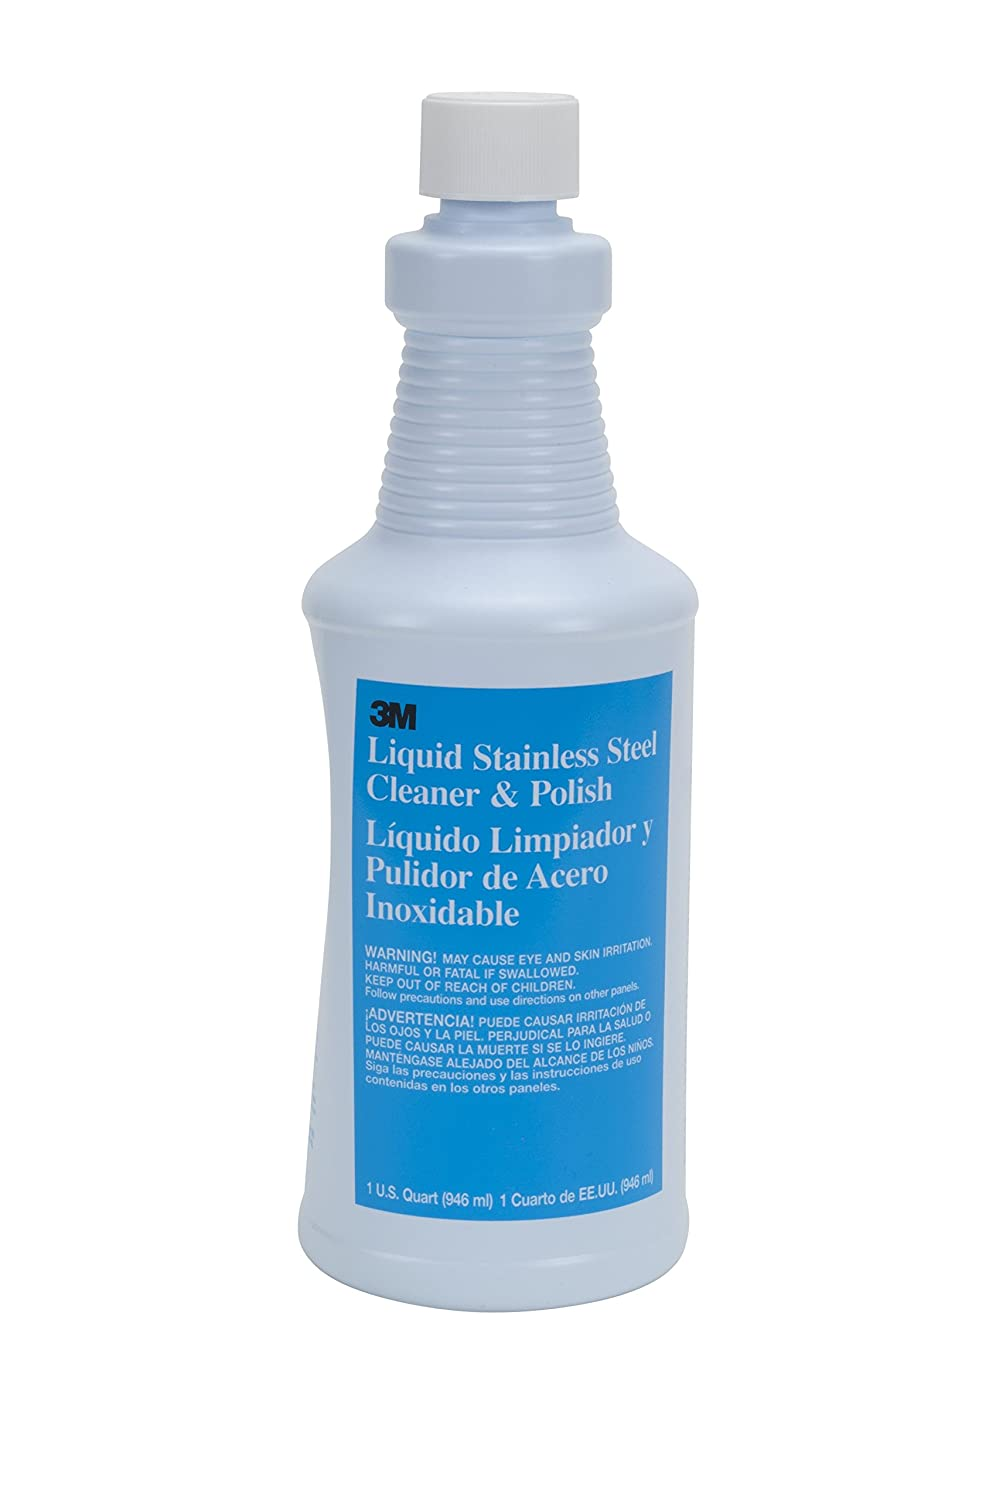 Amazon.com: 3M Liquid Stainless Steel Cleaner and Polish ...